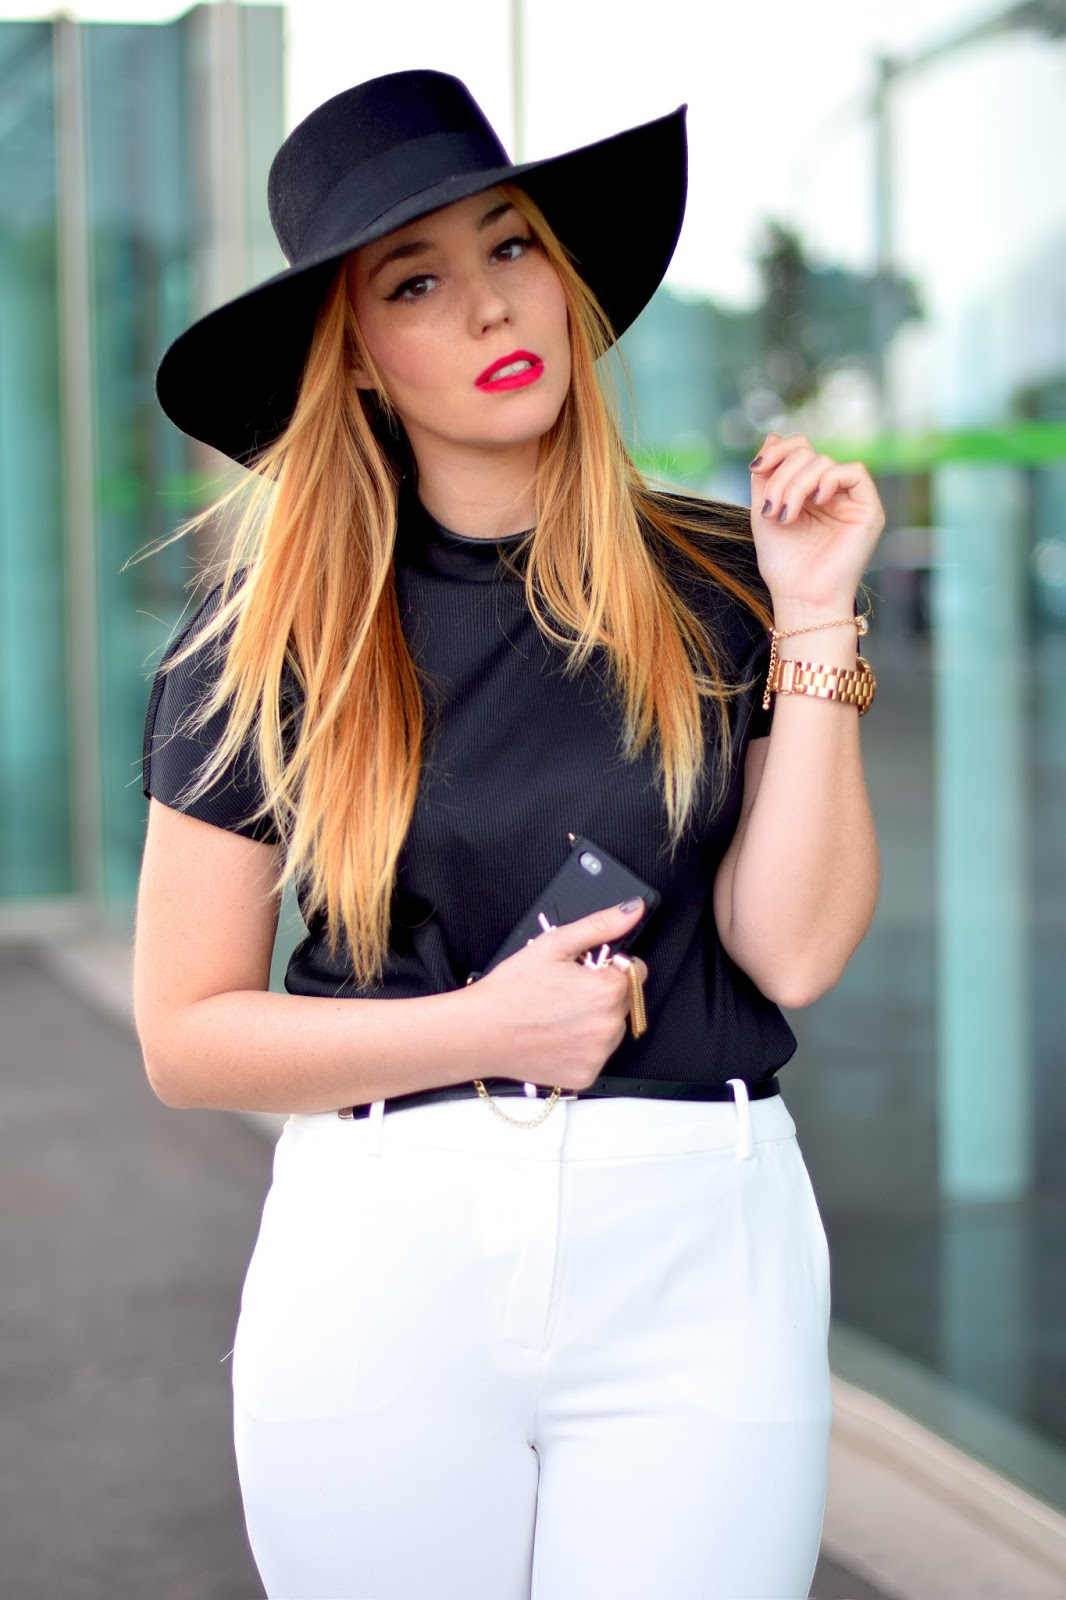 nery hdez, ysl iphone cover, les petits boutique, hat , black & white